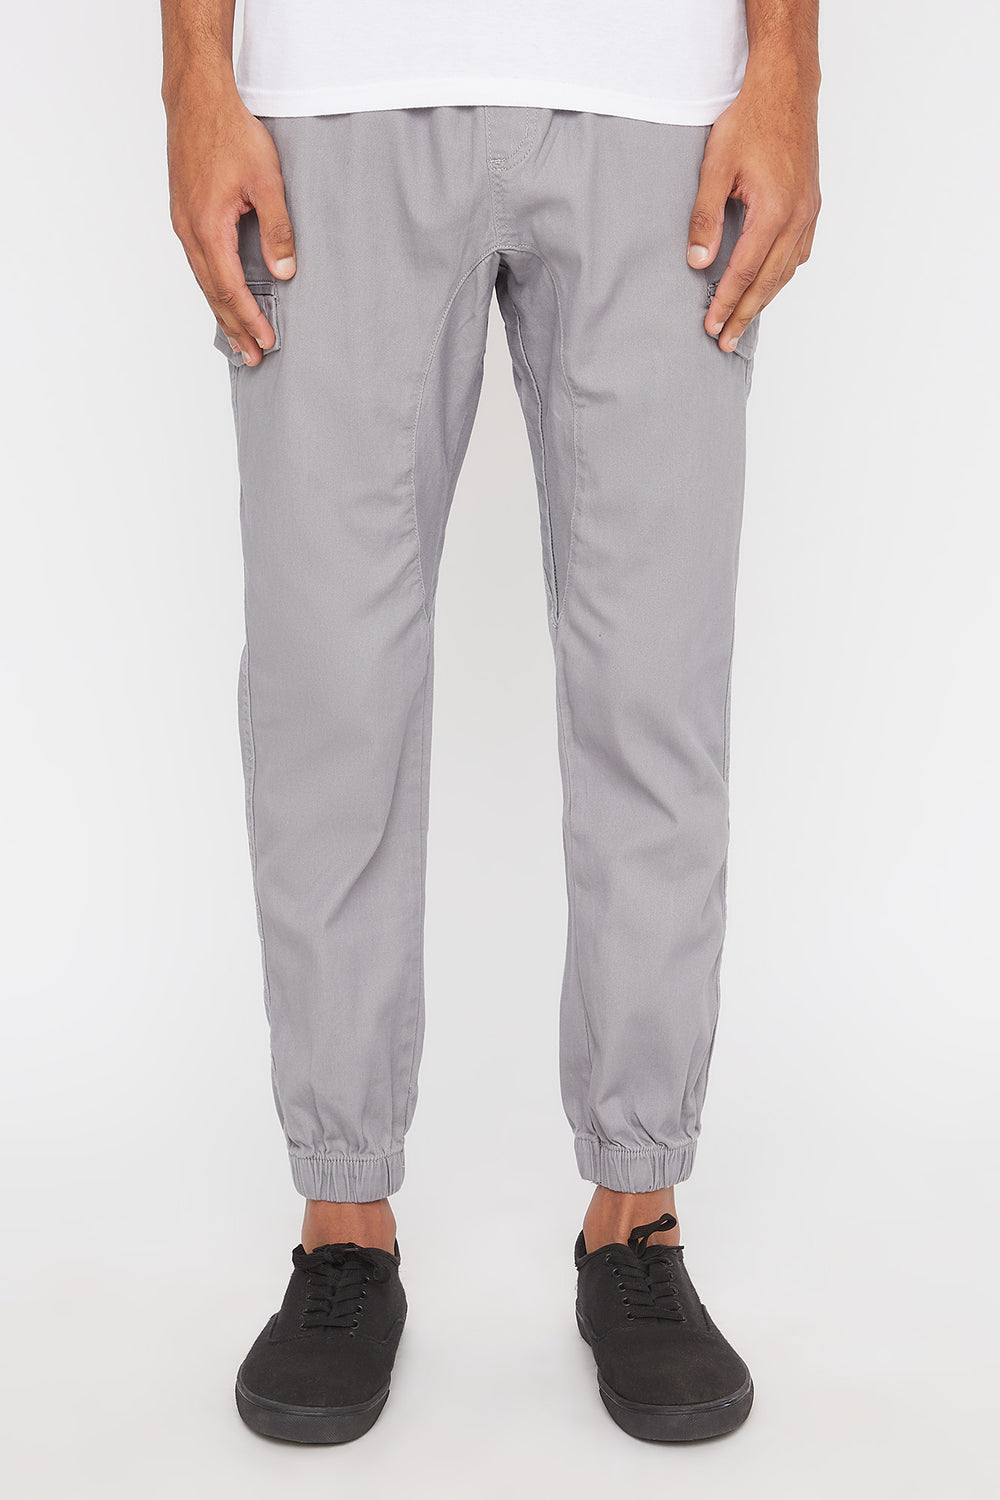 West49 Mens Cargo Jogger Heather Grey